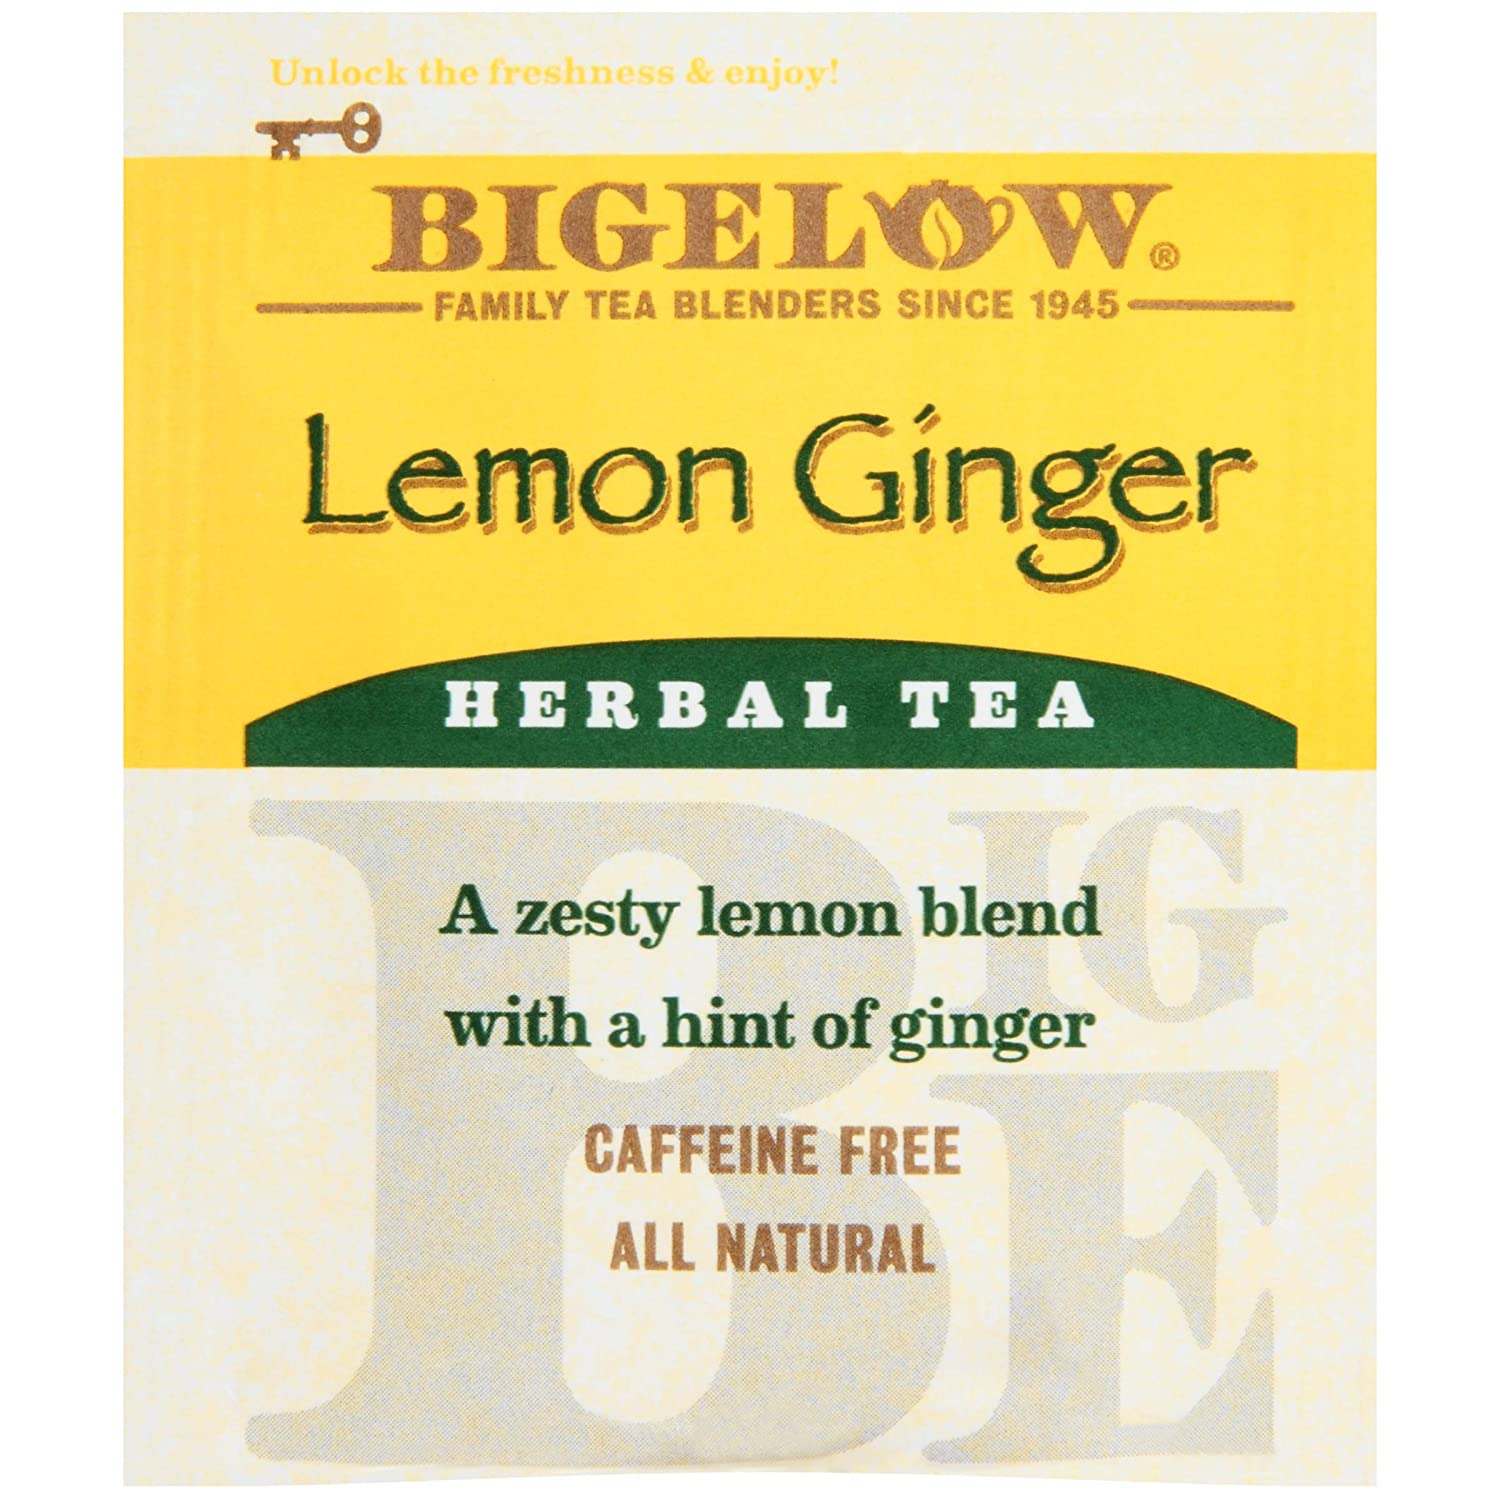 Bigelow Lemon Ginger Herbal Tea Bags 28-Count Box